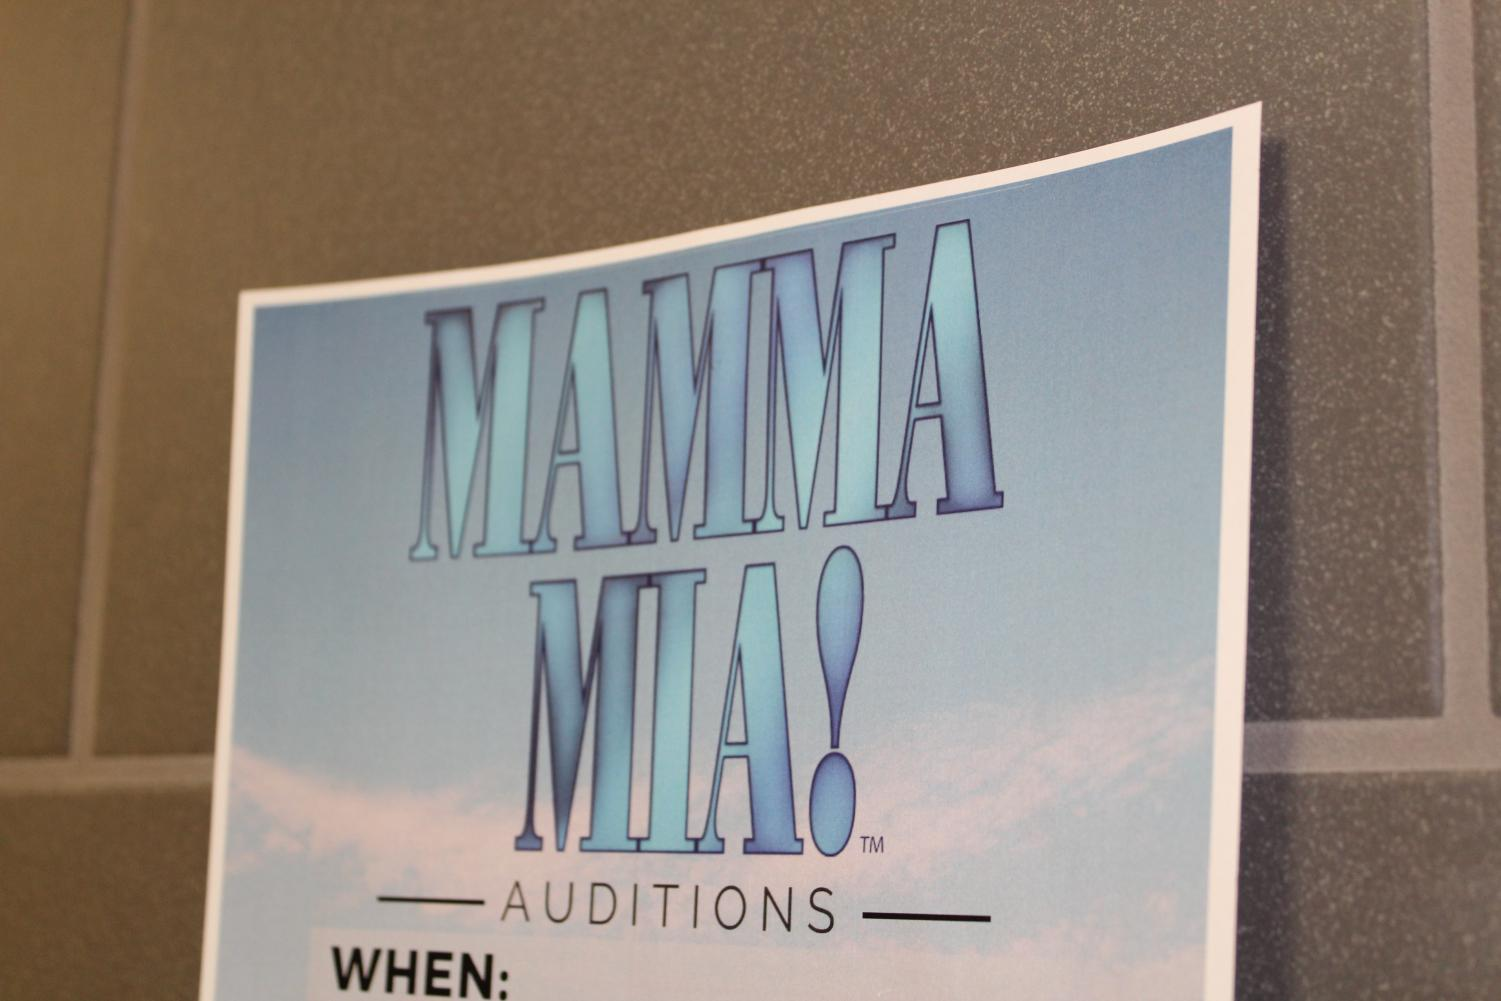 Mamma Mia posters can be seen all throughout Southeast, advertising the shows performances that start on April 30.